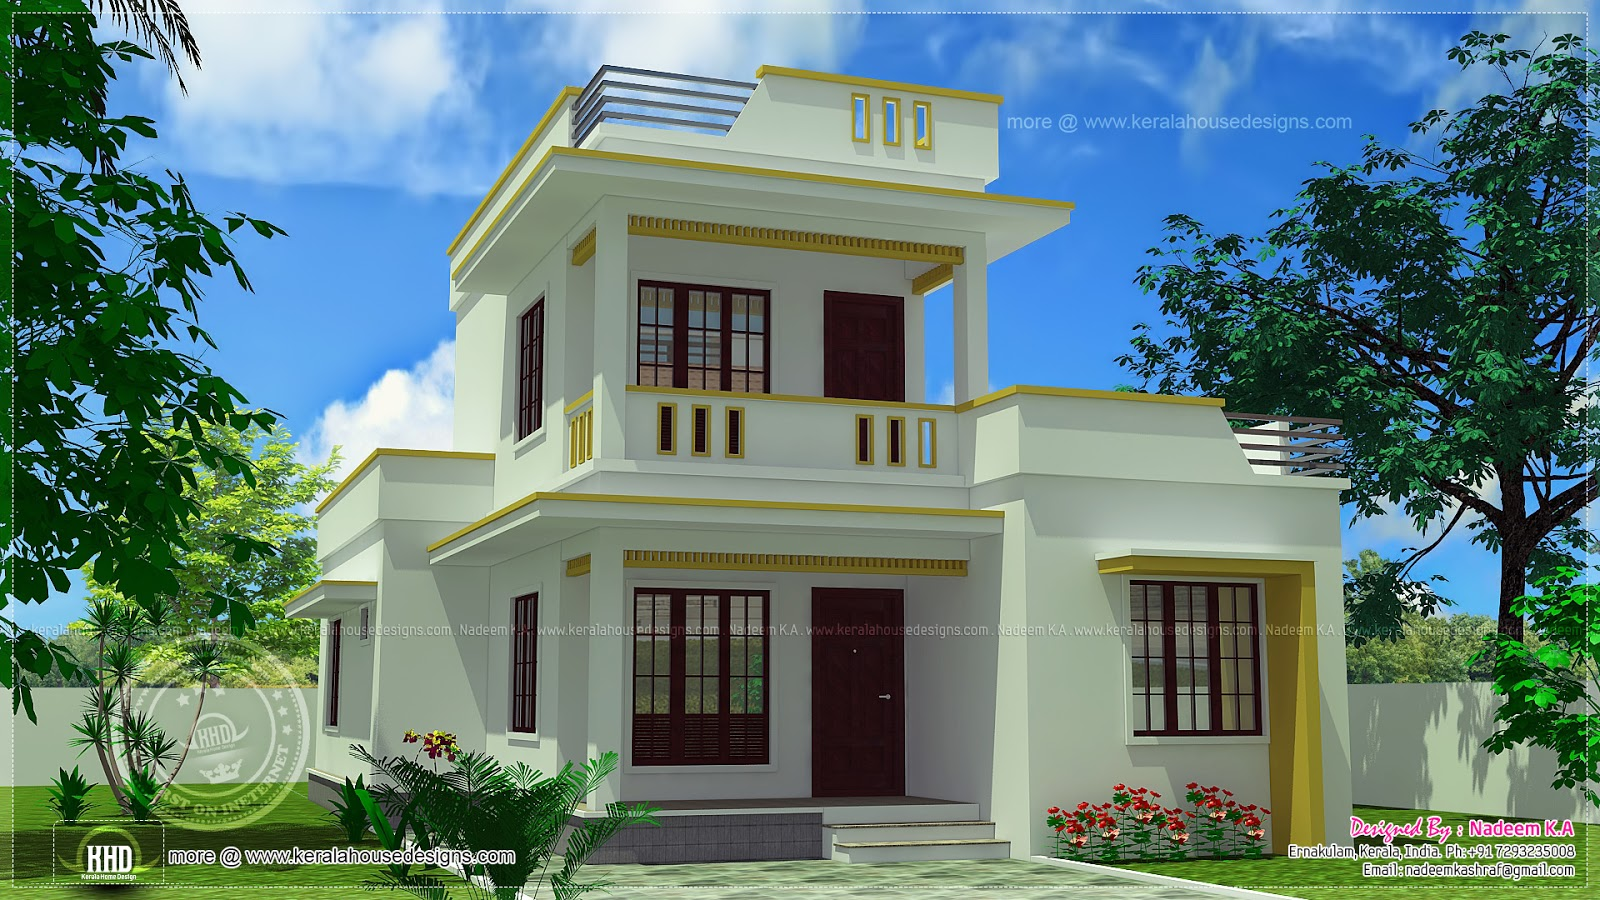 August 2013 kerala home design and floor plans for House floor plans with pictures